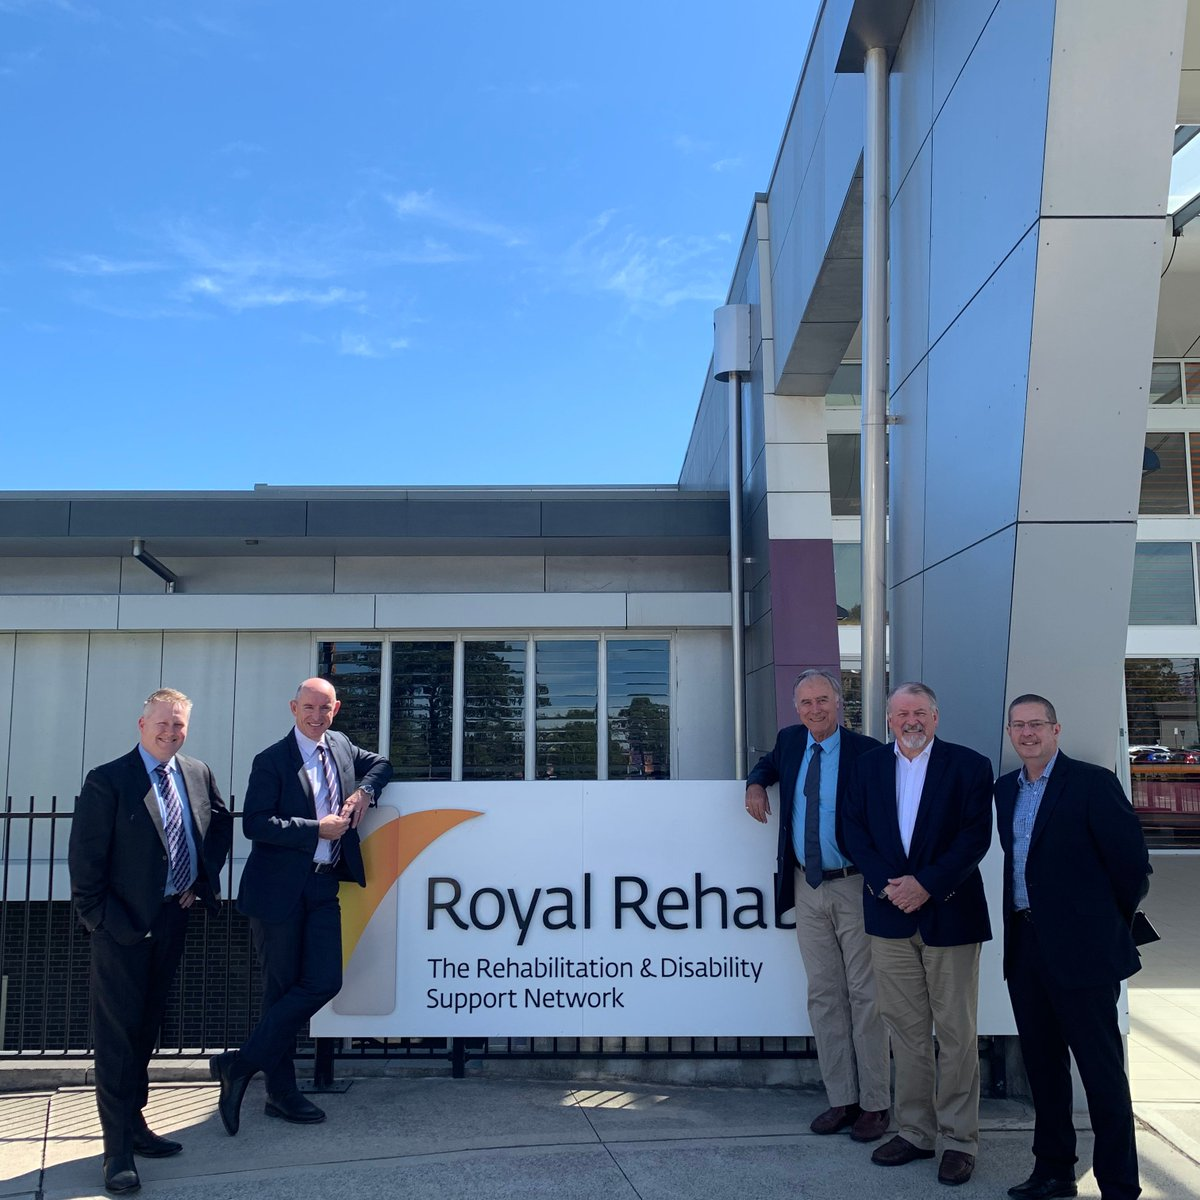 Stuart Robert Mp On Twitter A Truly Amazing Visit To The Royal Rehab In Ryde Sydney With Exceptional Local Member John Alexander Hard To Believe Royal Is 120 Years Old 120royalrehab